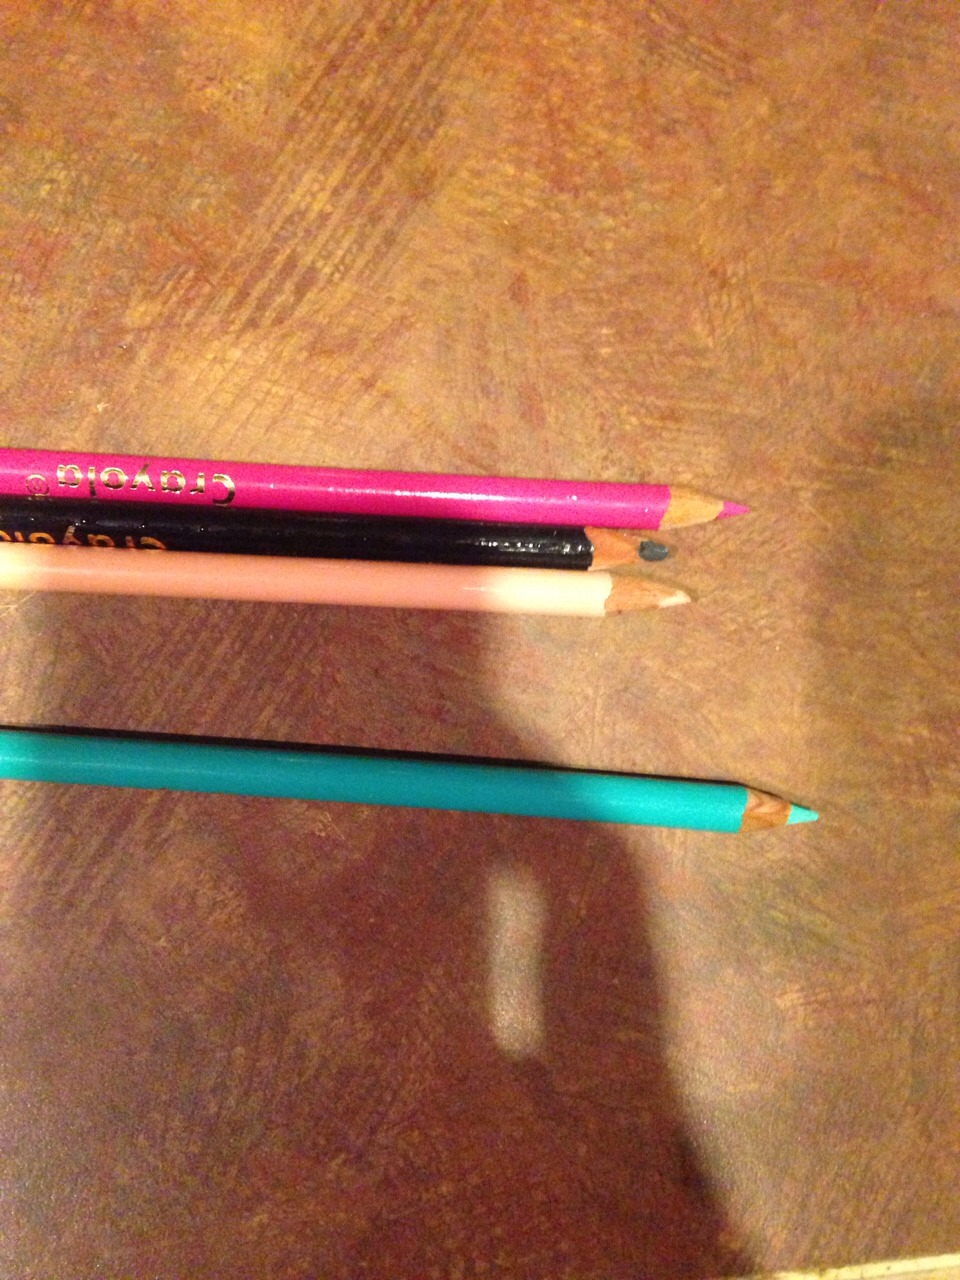 Take any color pencil